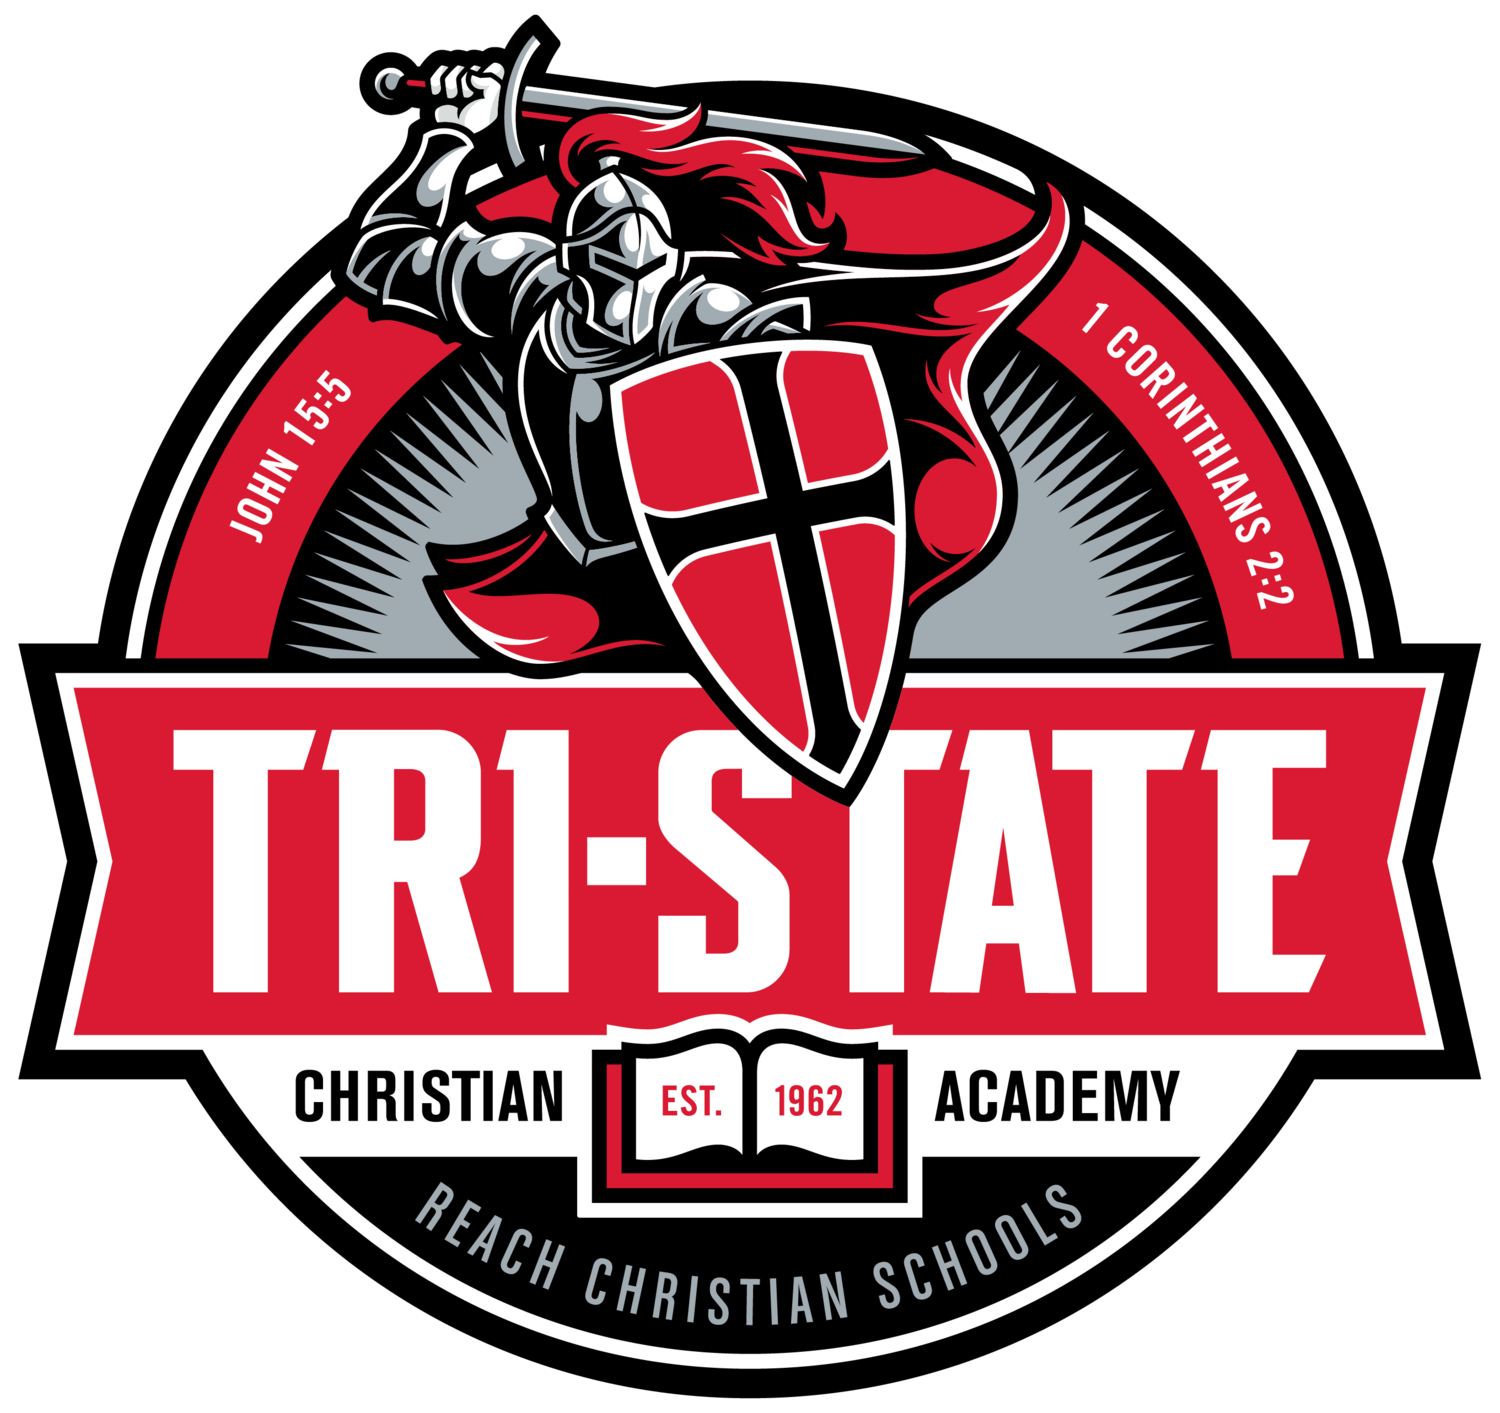 Tri-State Christian Academy | ASCI Christian Academy located in Elkton, MD